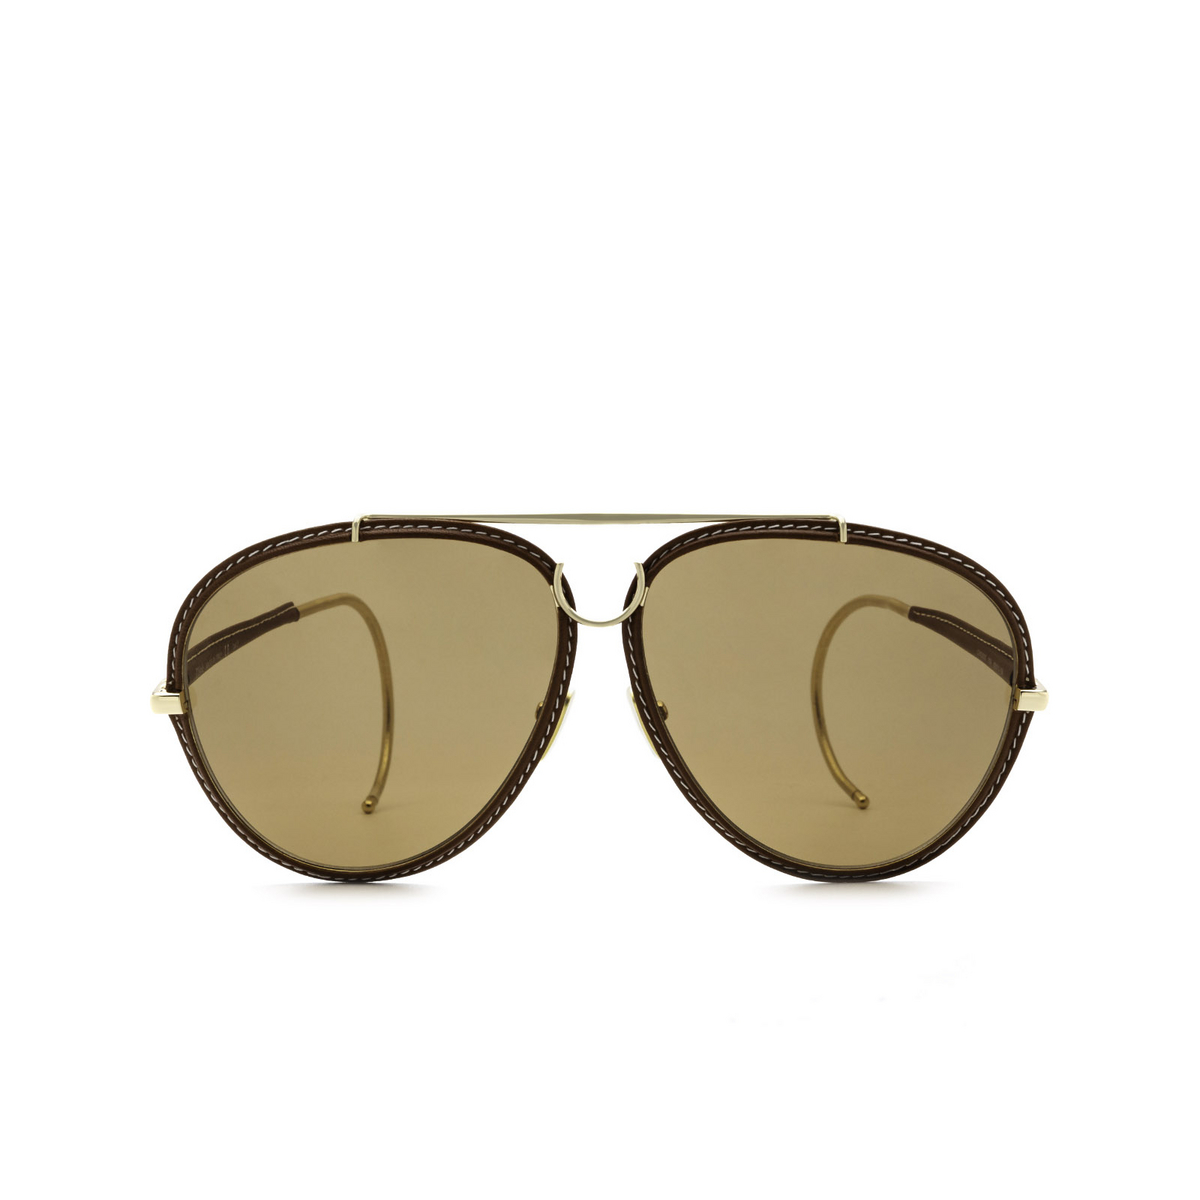 Chloé® Aviator Sunglasses: CH0080S color Gold 004 - front view.